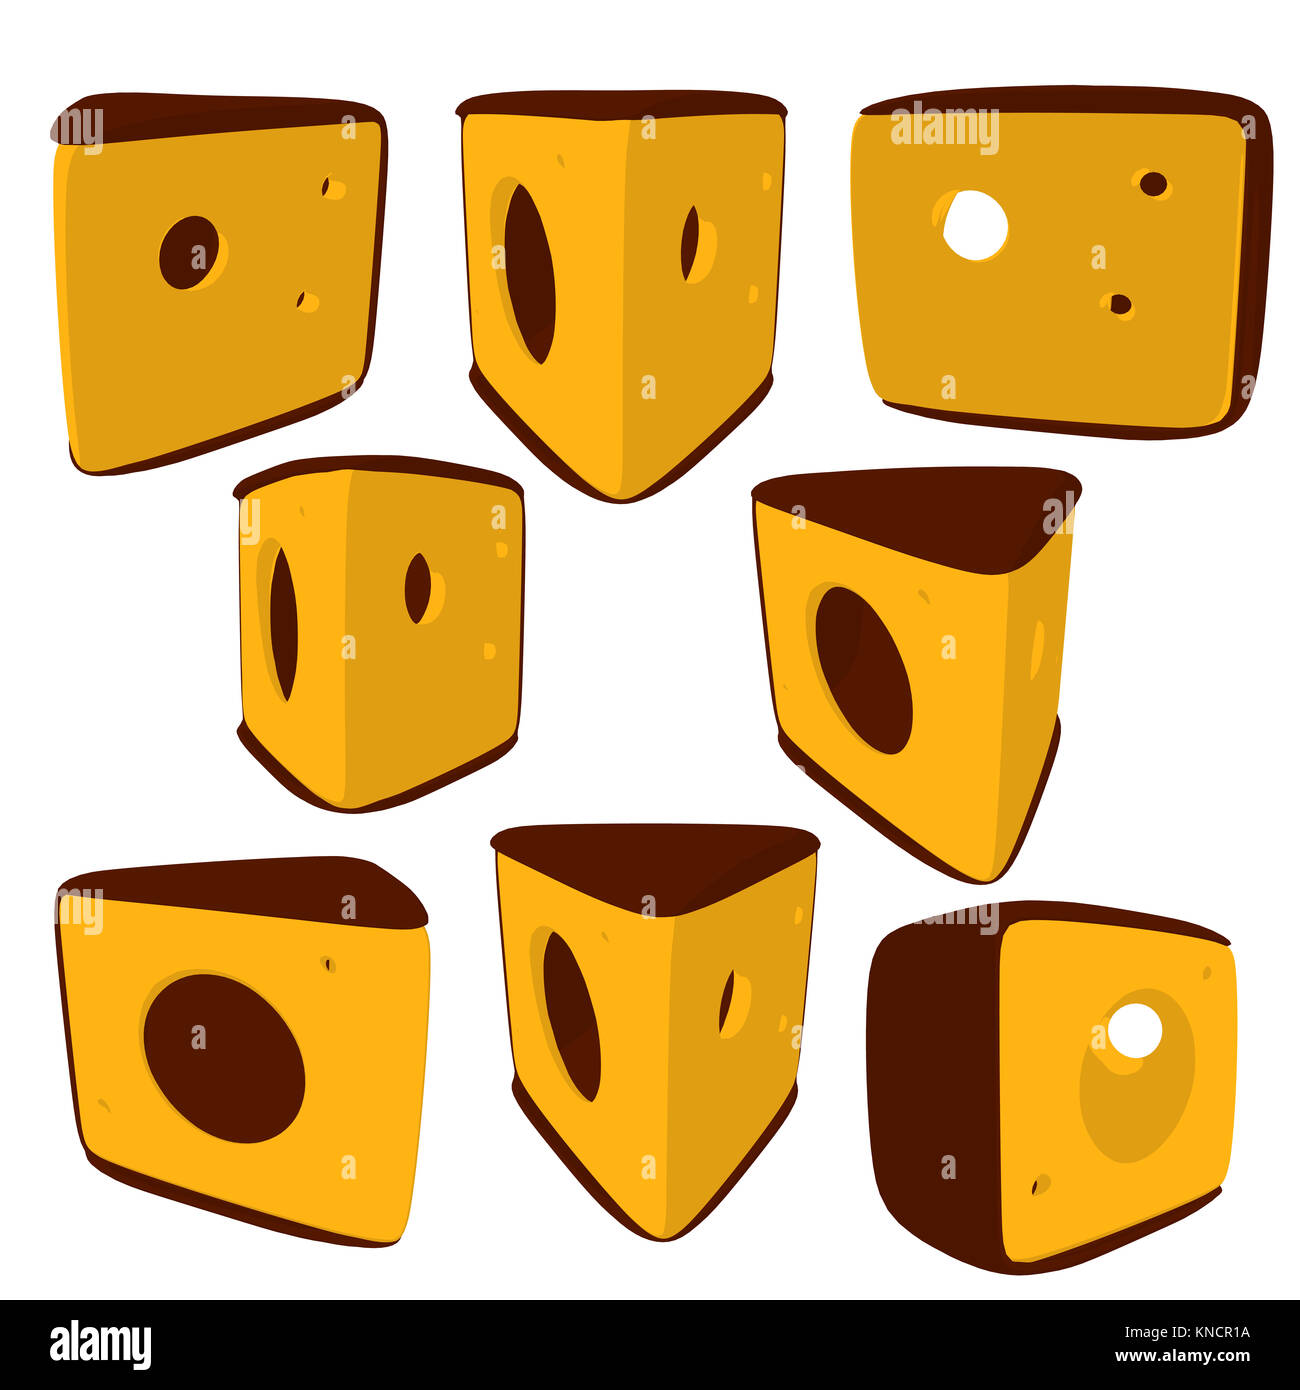 Cheese Clipart High Resolution Stock Photography And Images Alamy Choose from over a million free vectors, clipart graphics, vector art images, design templates, and illustrations created by artists worldwide! https www alamy com stock image cheese slices silhouette illustration on a white background 168082582 html